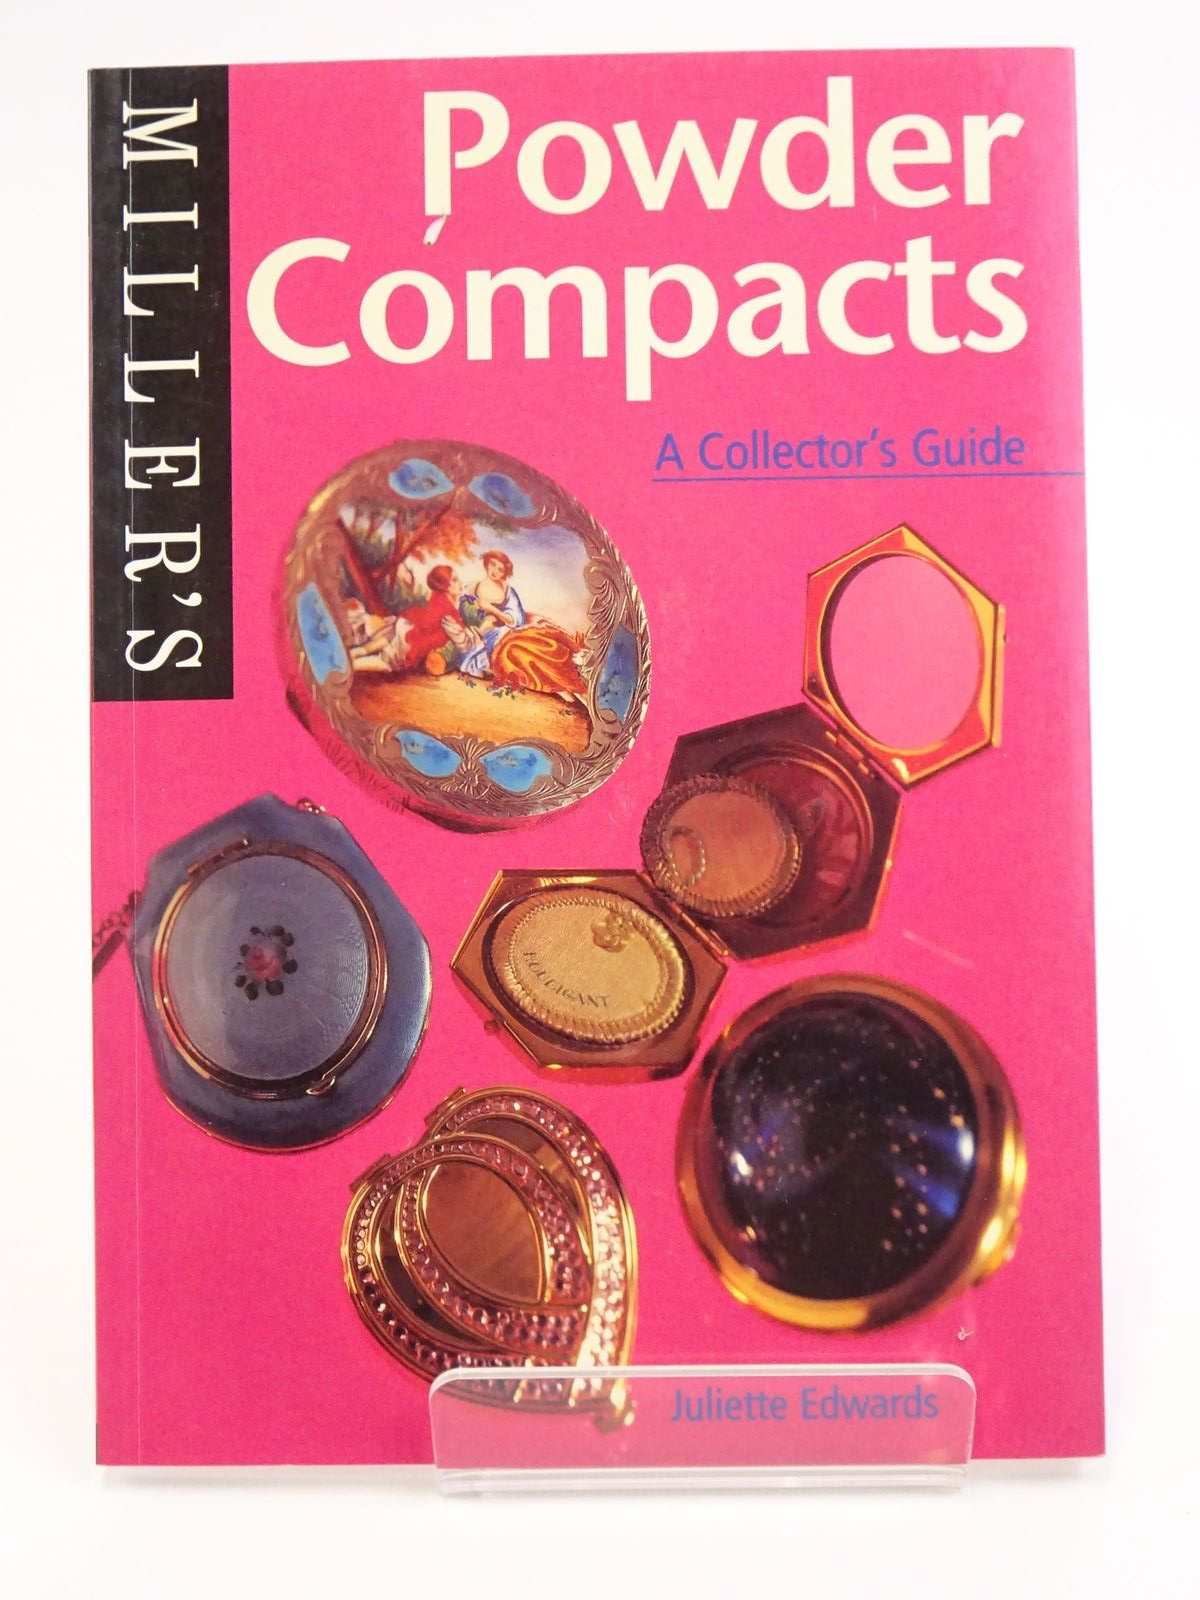 Photo of MILLER'S POWDER COMPACTS A COLLECTOR'S GUIDE written by Edwards, Juliette published by Miller's (STOCK CODE: 1318065)  for sale by Stella & Rose's Books